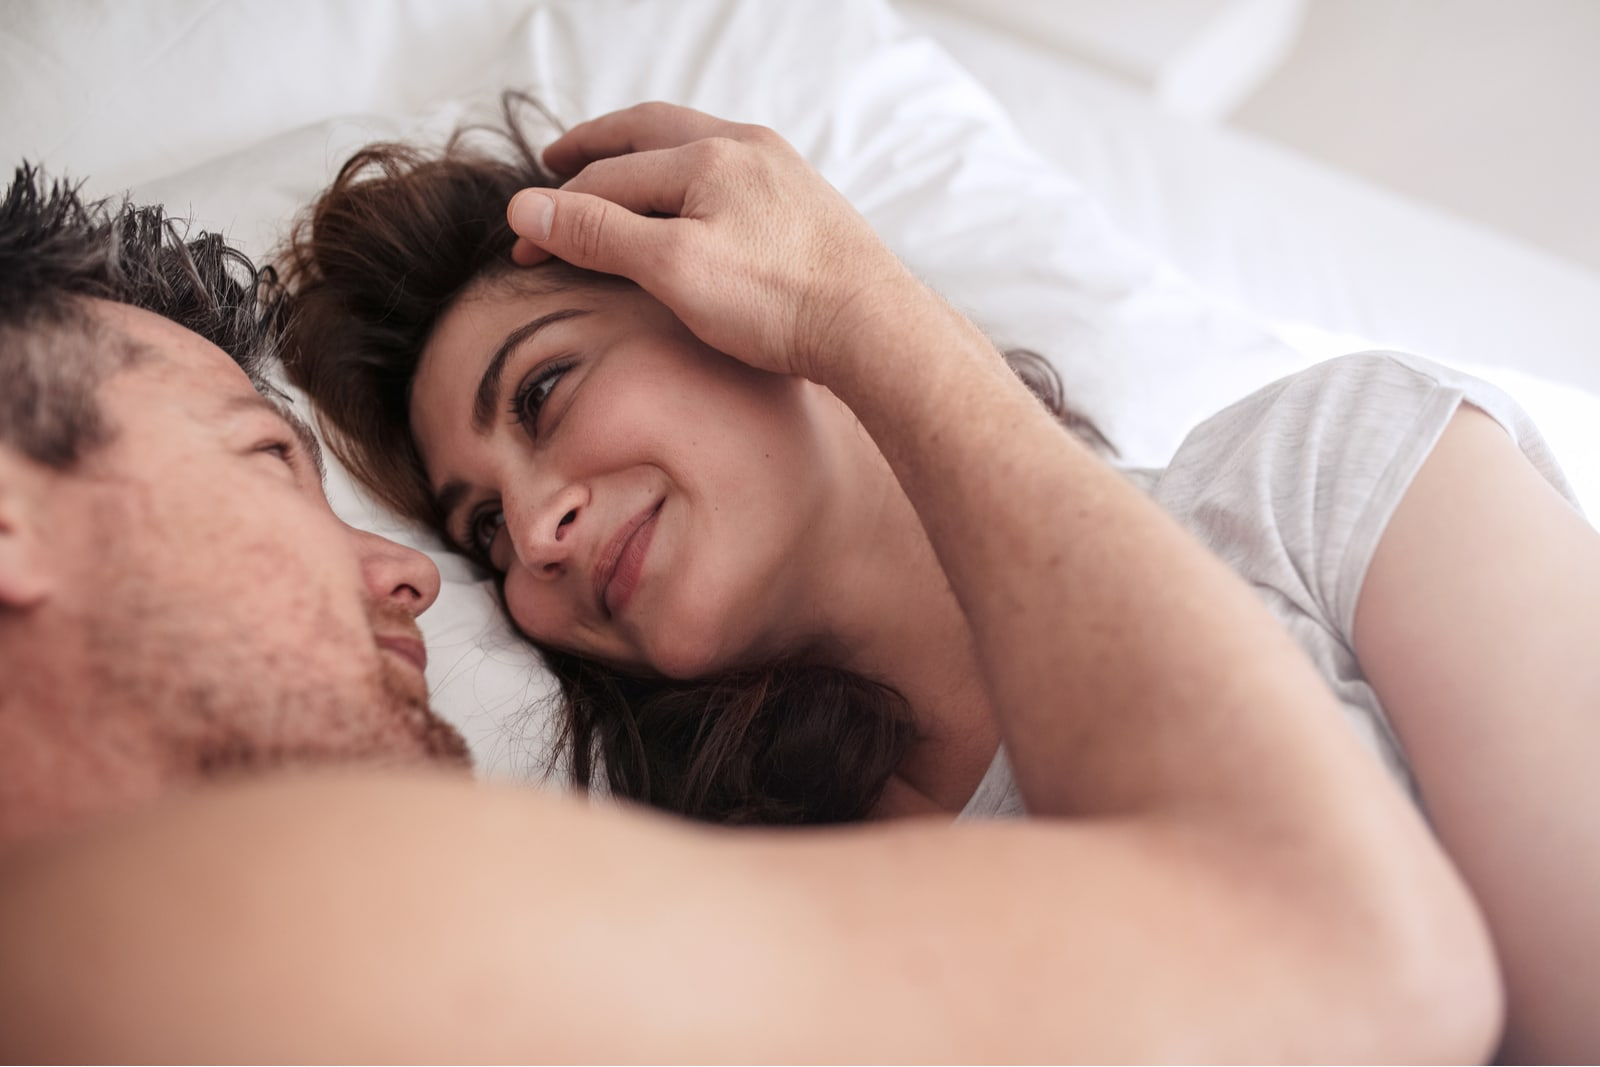 a man in bed caresses the face of a smiling woman